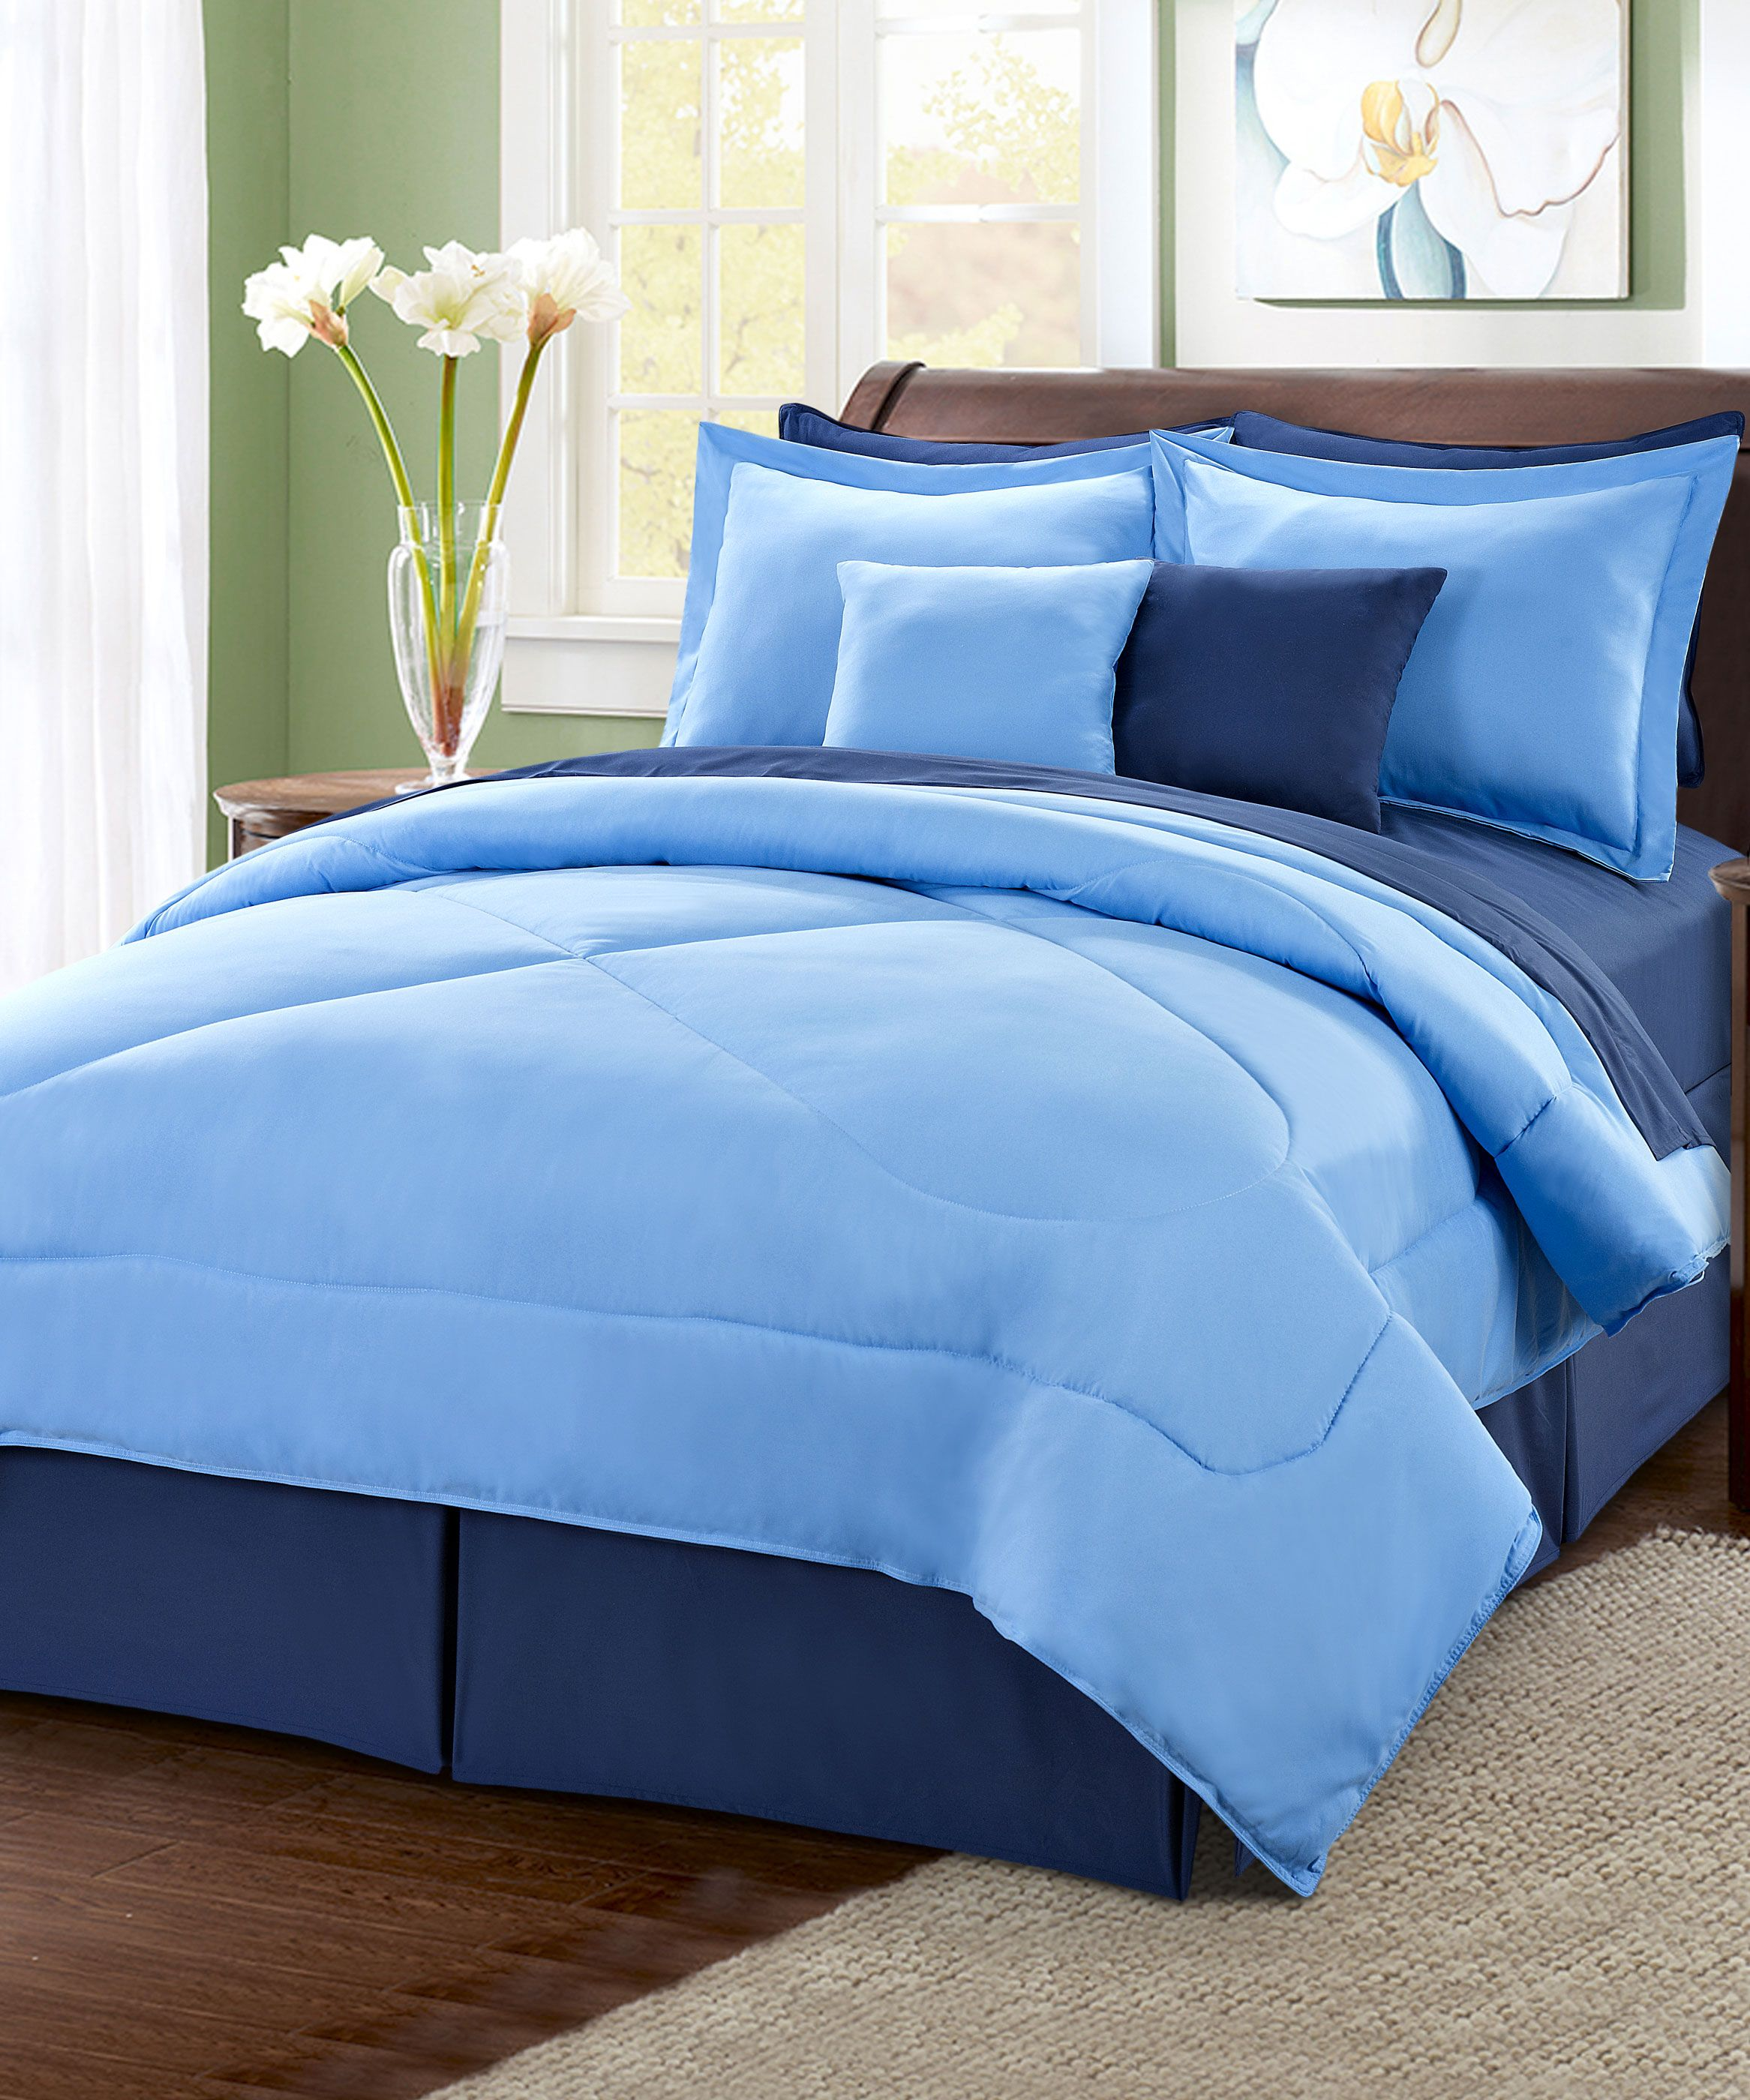 blue navy queen bed comforter ideas sets set comforters